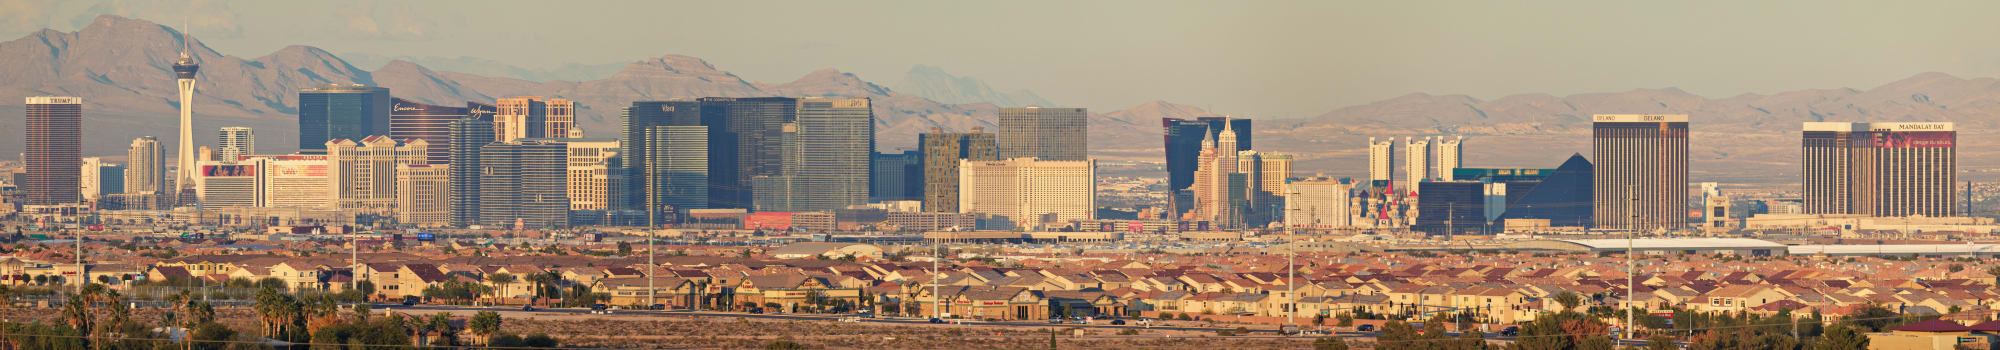 Get directions to Maryland Villas in Las Vegas